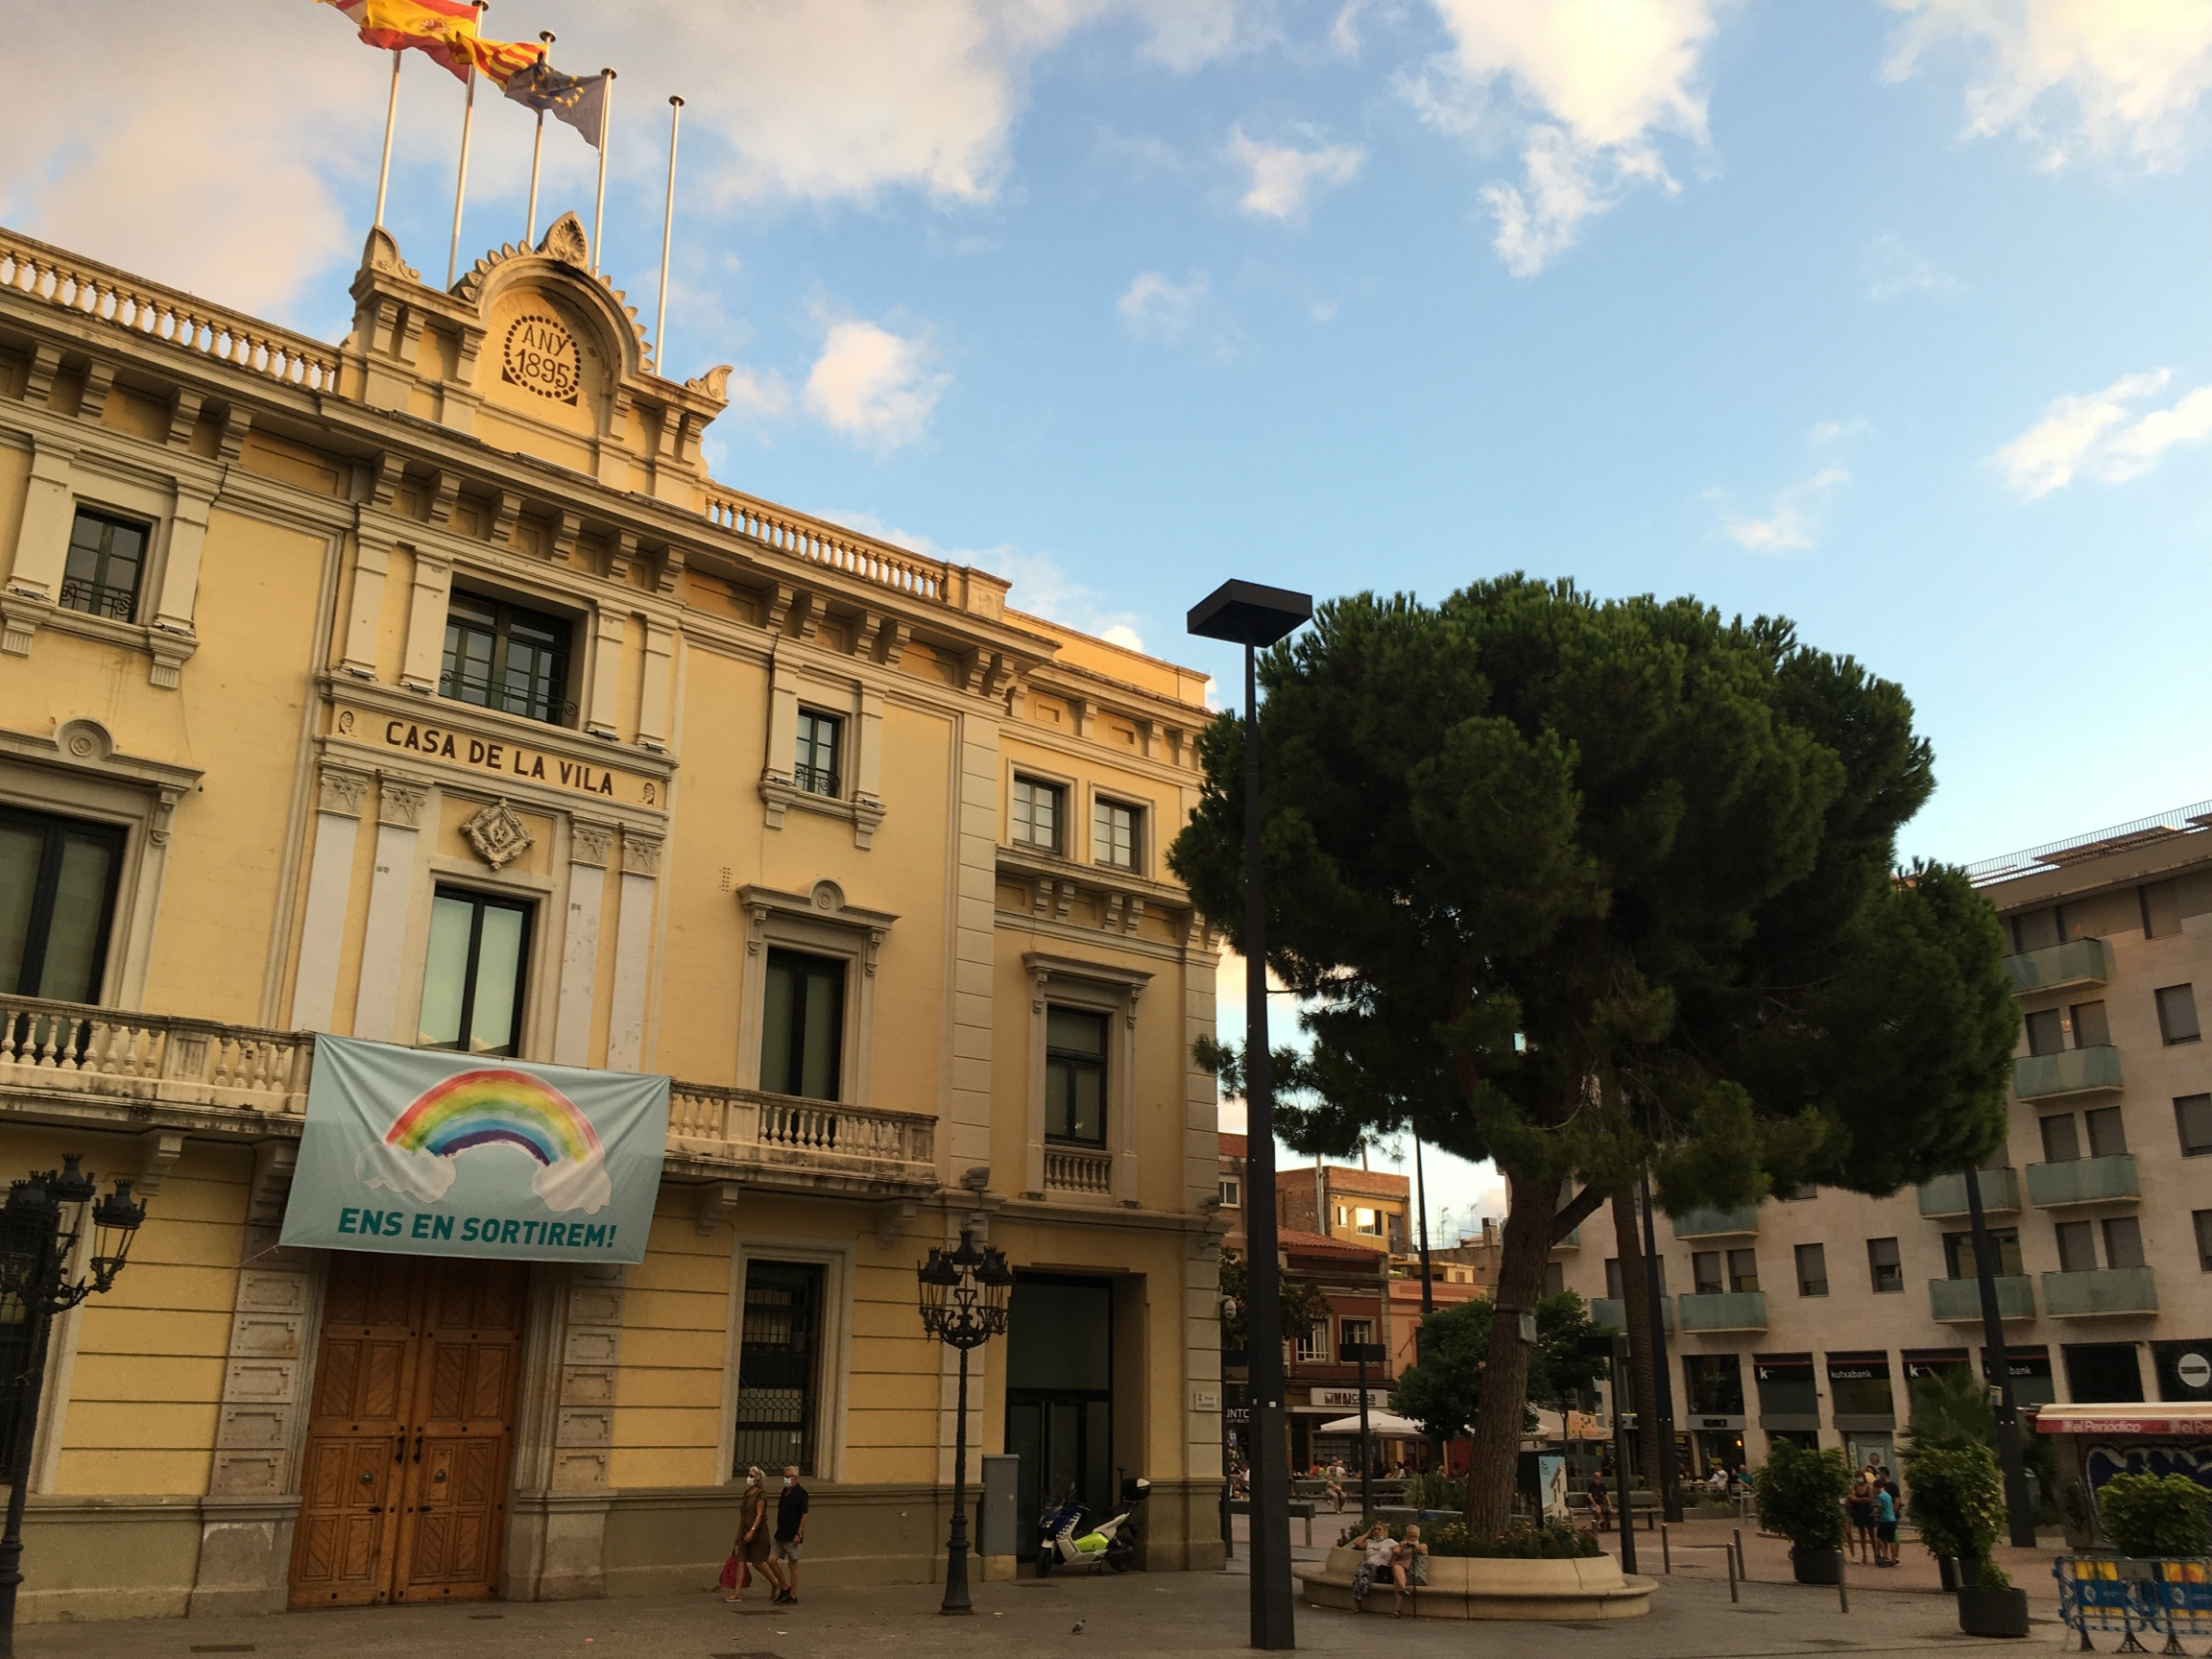 L'Hospitalet de Llobregat,which has historically been a working-class city with a large migrant population, is beginning to see rent prices comparable to those in Barcelona.